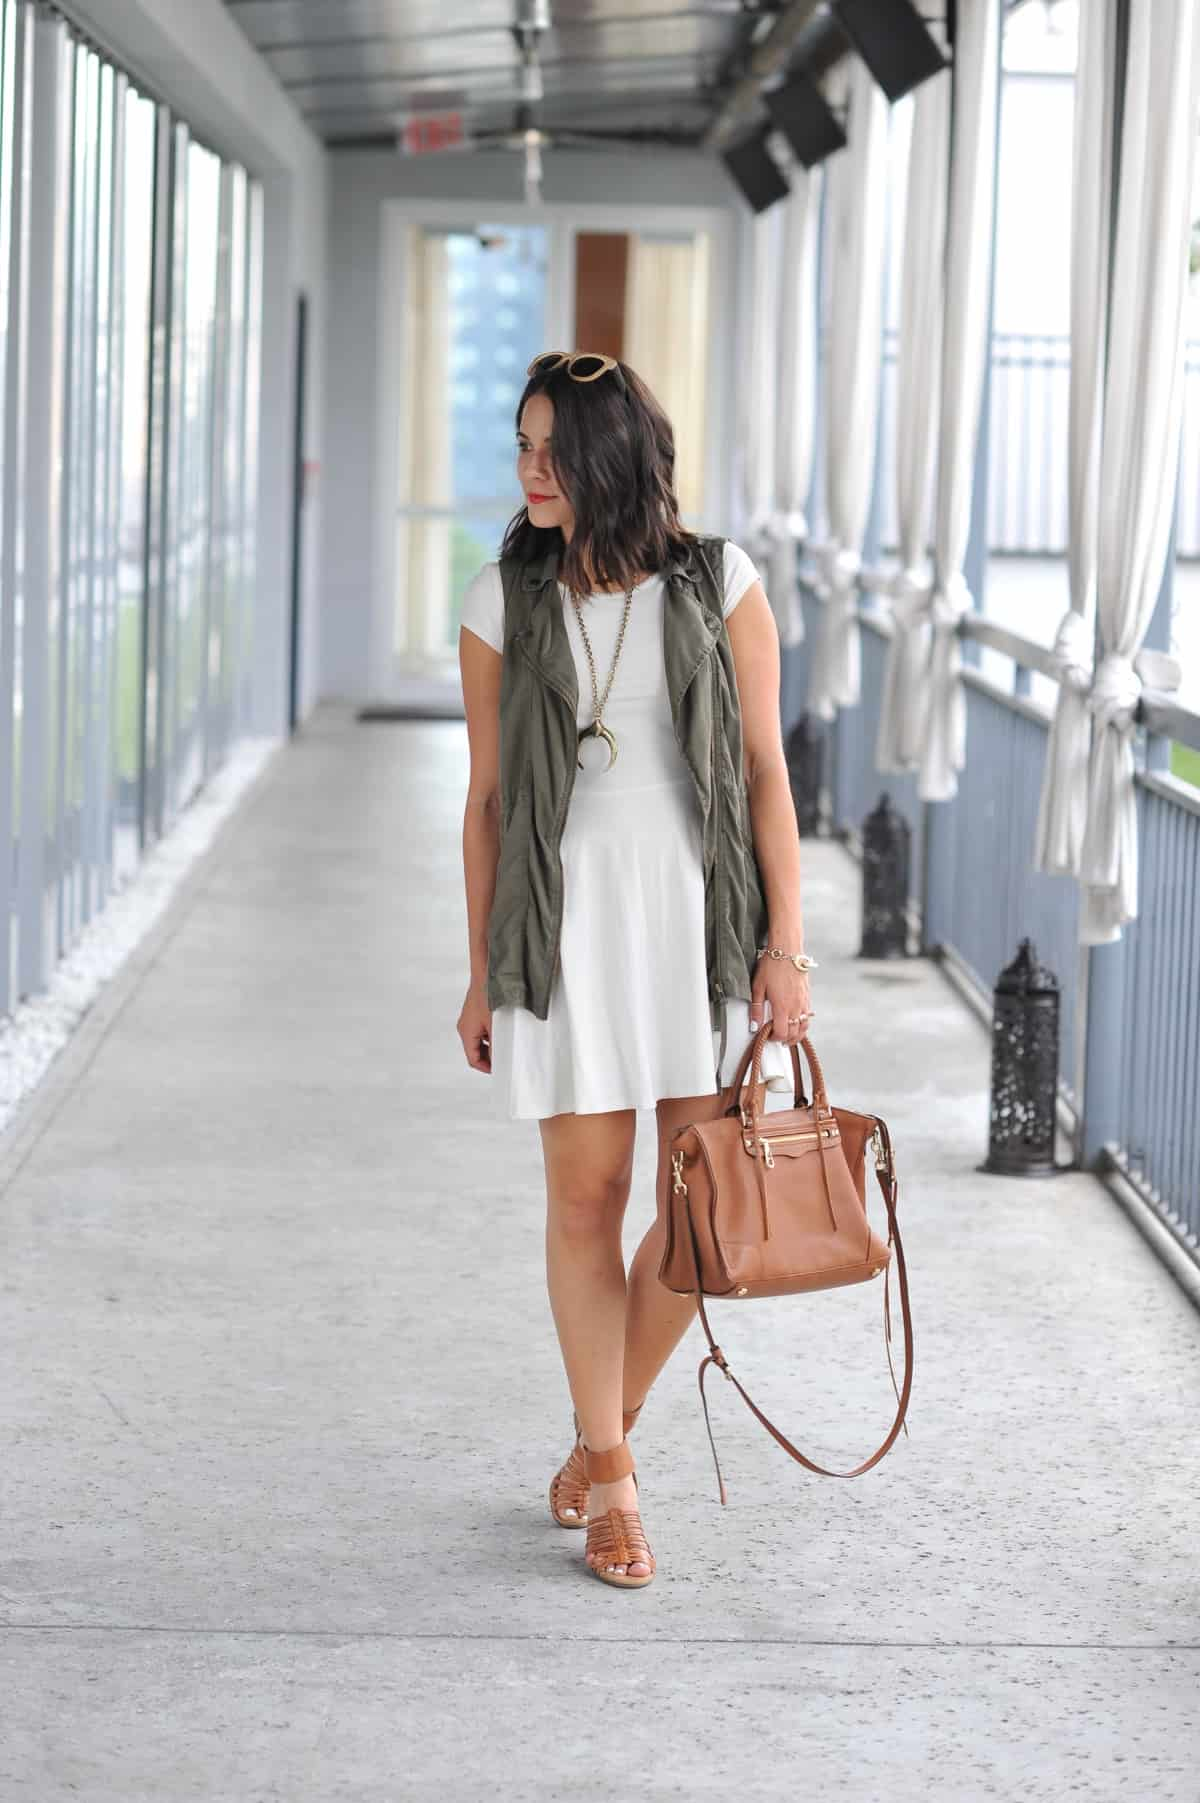 how to style a vest for summer - My Style Vita @mystylevita - 10